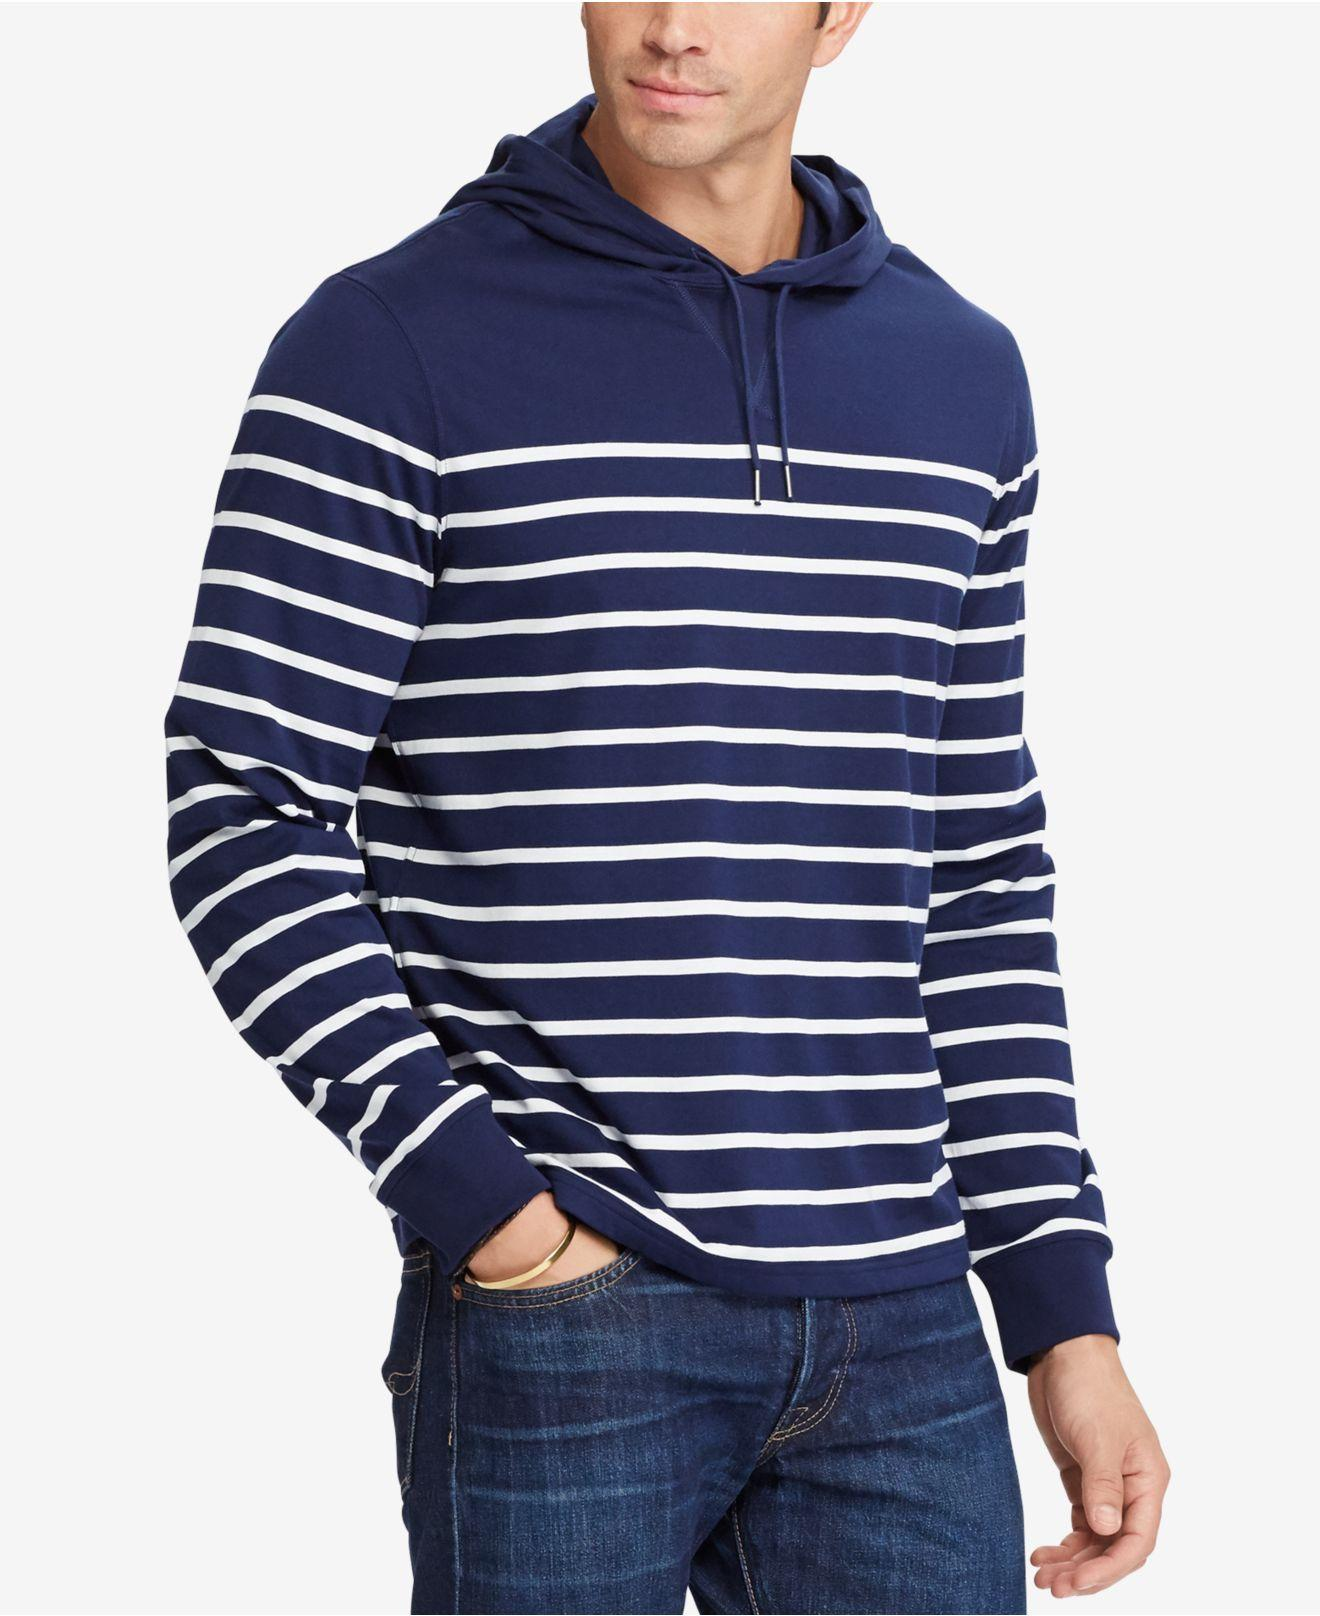 lyst polo ralph lauren men 39 s big tall striped pima cotton jersey hoodie in blue for men. Black Bedroom Furniture Sets. Home Design Ideas